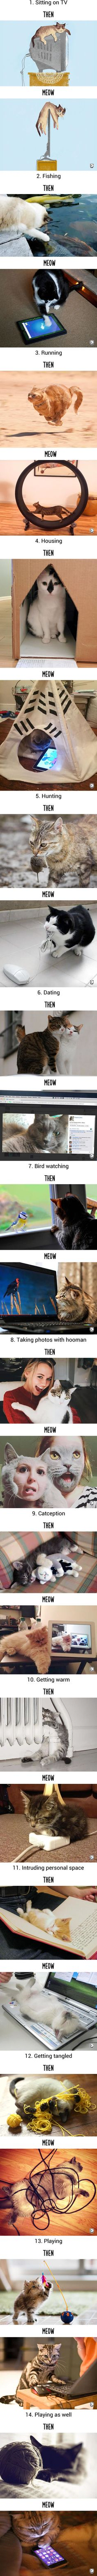 Then vs Meow: How Technology Has Changed Cats' Lives,poor kitties! Funny Animal Memes, Cute Funny Animals, Funny Animal Pictures, Funny Cute, Cat Memes, Cute Cats, Hilarious, Drunk Pictures, Funny Drunk